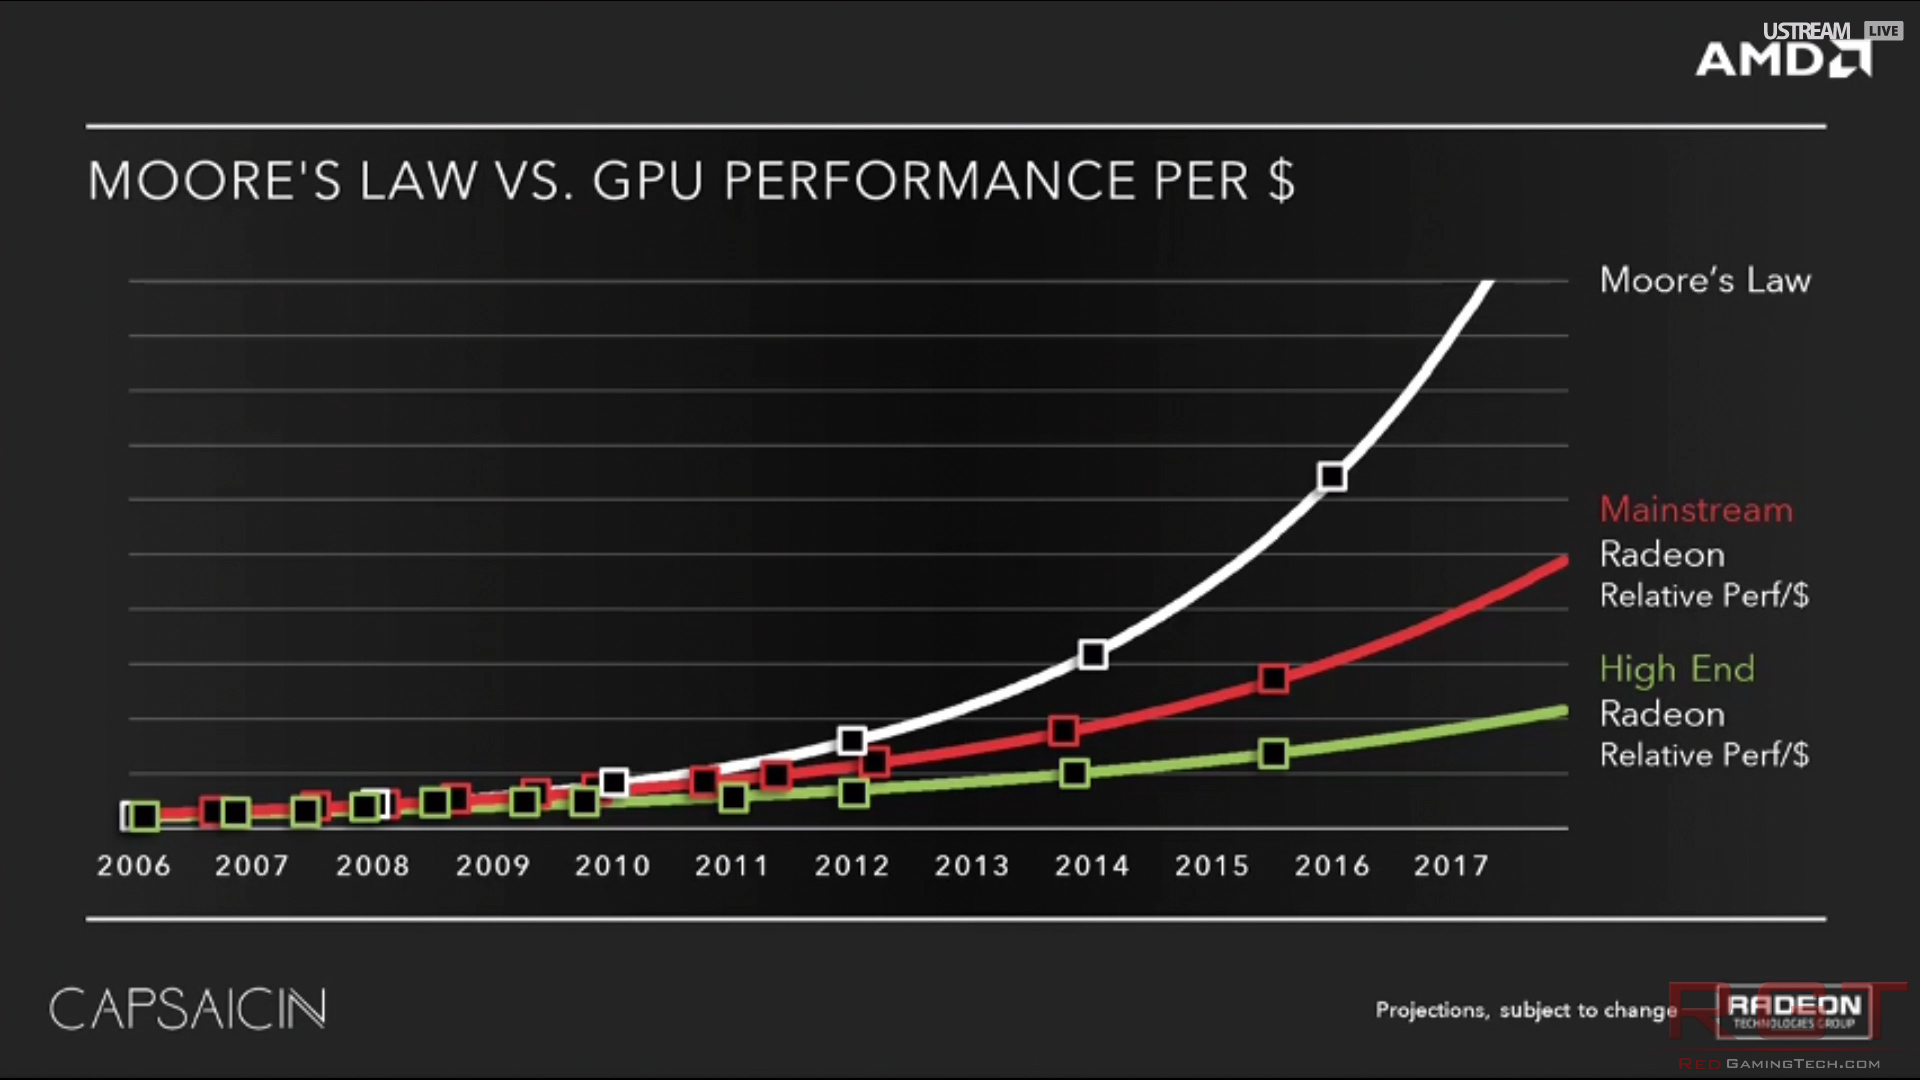 AMD's Moore's Law Example shows how mainstream cards provide better performance per dollar than bleeding edge hardware